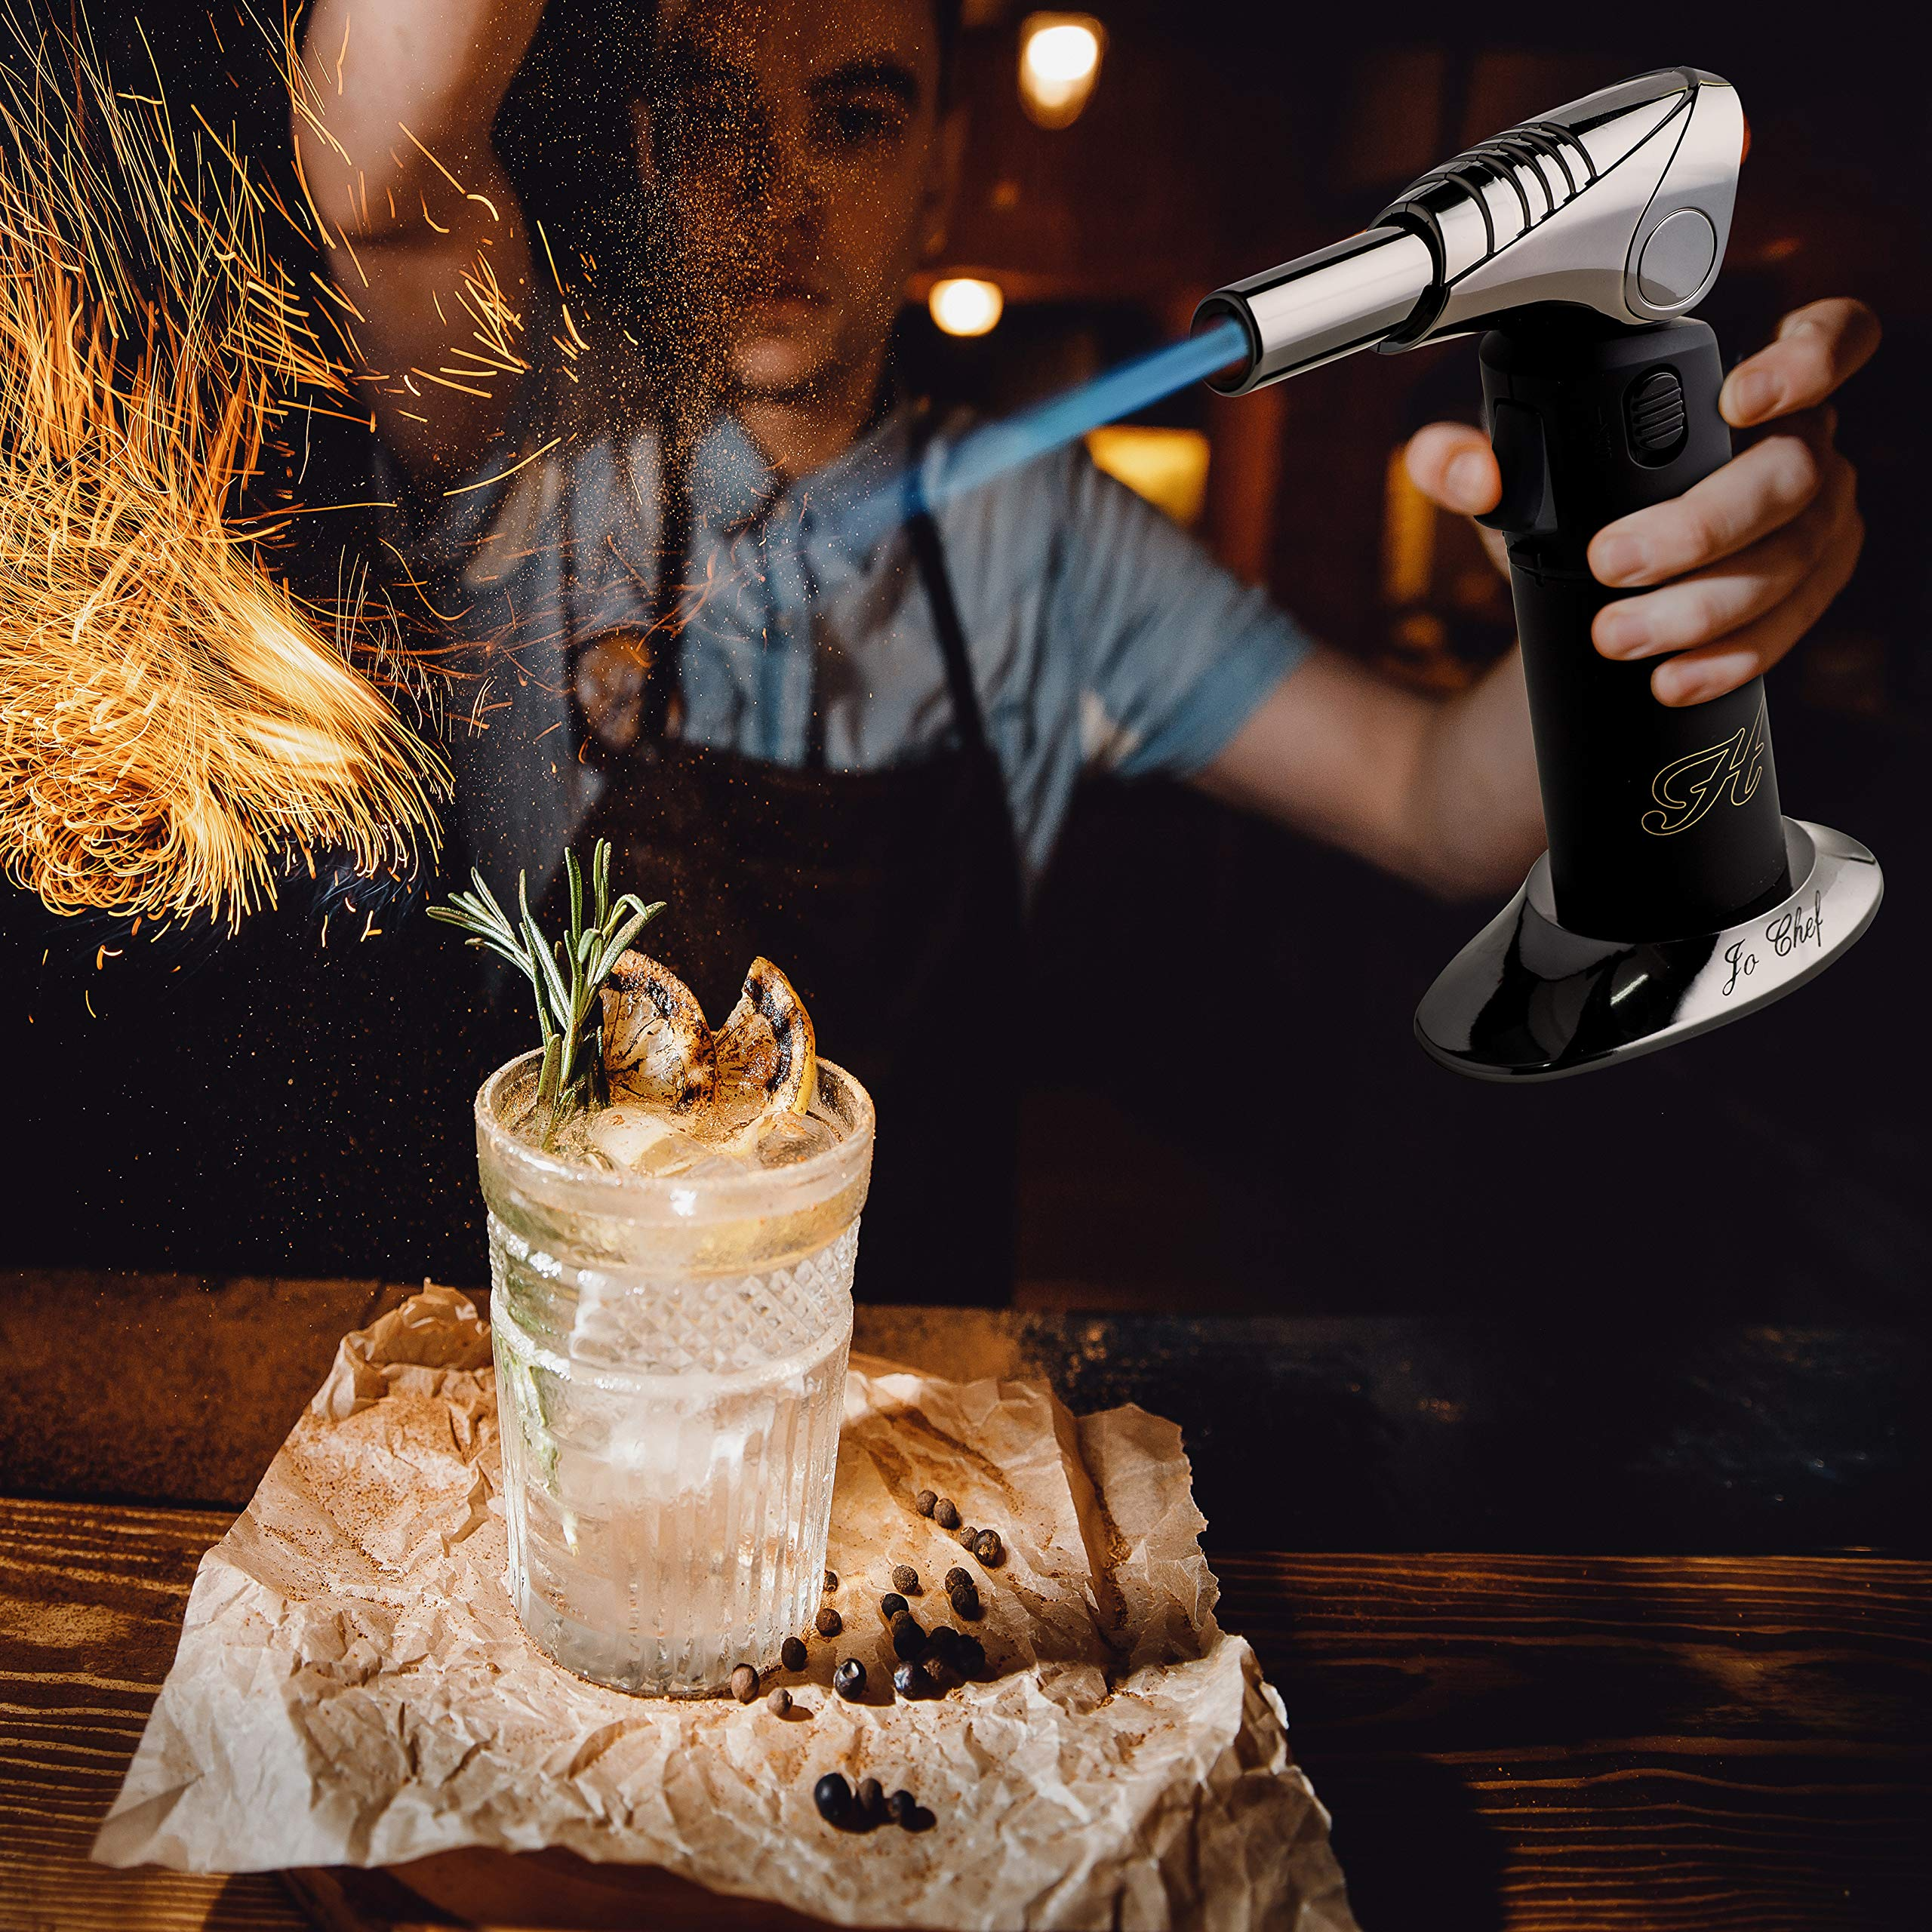 PREMIUM Crème Brûlée Torch - The Ultimate Kitchen Food Torch - Windproof, Use at Any Angle, Safety Switch, Ergonomic Matte Black Grip - Culinary Butane Blow Torch 2,700°F - by Jo Chef by Jo Chef (Image #6)